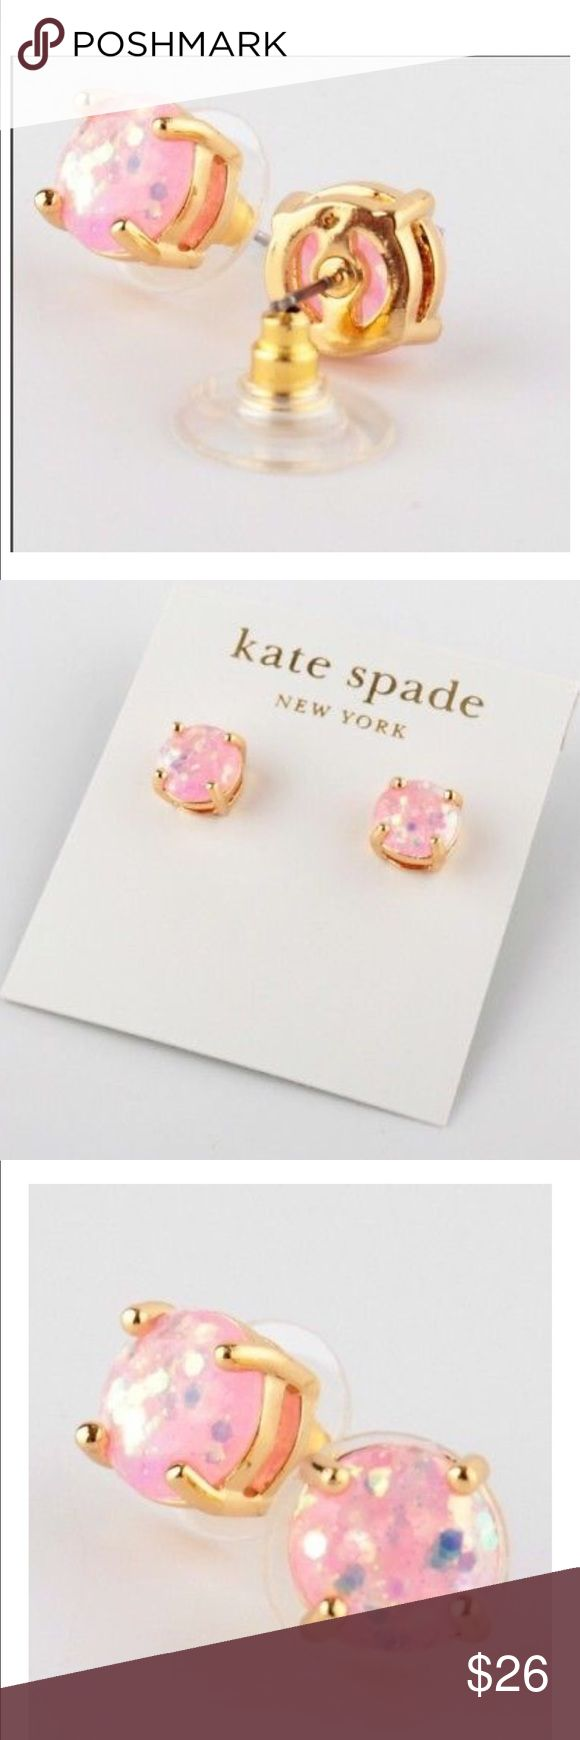 """Kate Spade New York Mini GlitterEarrings Pale Pink Kate Spade  Mini Glitter Stud Earrings Pale Pink * 12k gold-plated metal/glitter-injected epoxy * 0.5""""L * Post backs  Beautiful! shiny 12-karat gold plated metal with glass stones. Earrings measure 5/16"""" wide. These earrings are brand new and have never been worn. Earrings come on earring card. Earring card does have the price tag on the back Kate Spade Jewelry Earrings"""